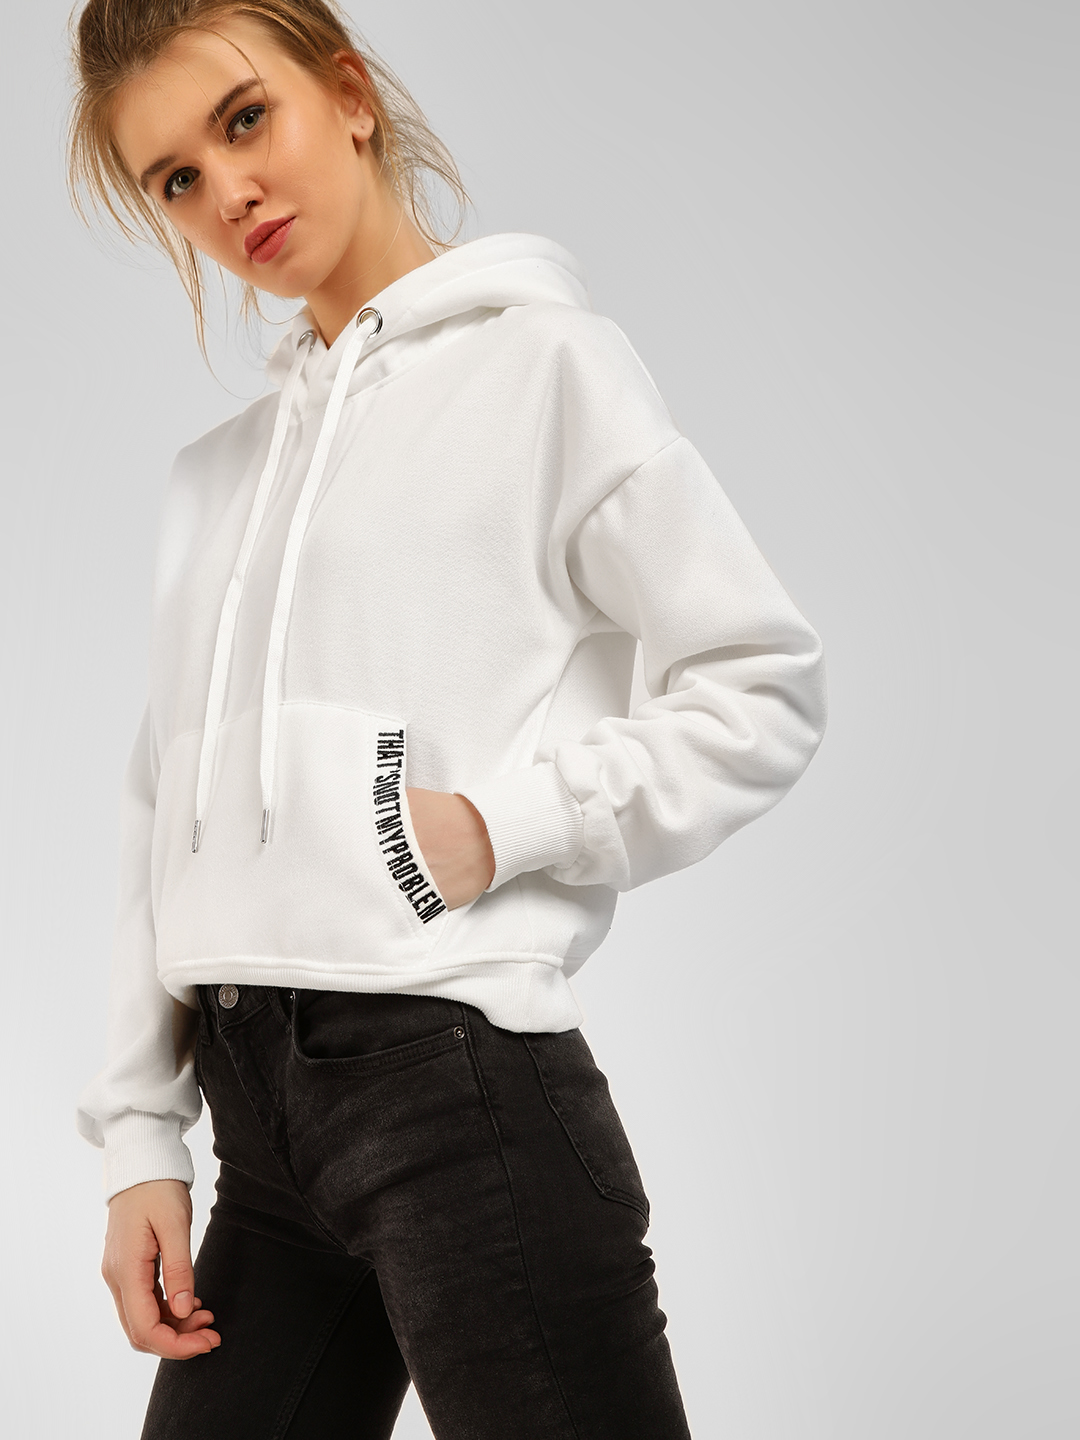 Origami Lily White Slogan Detail Hooded Sweatshirt 1